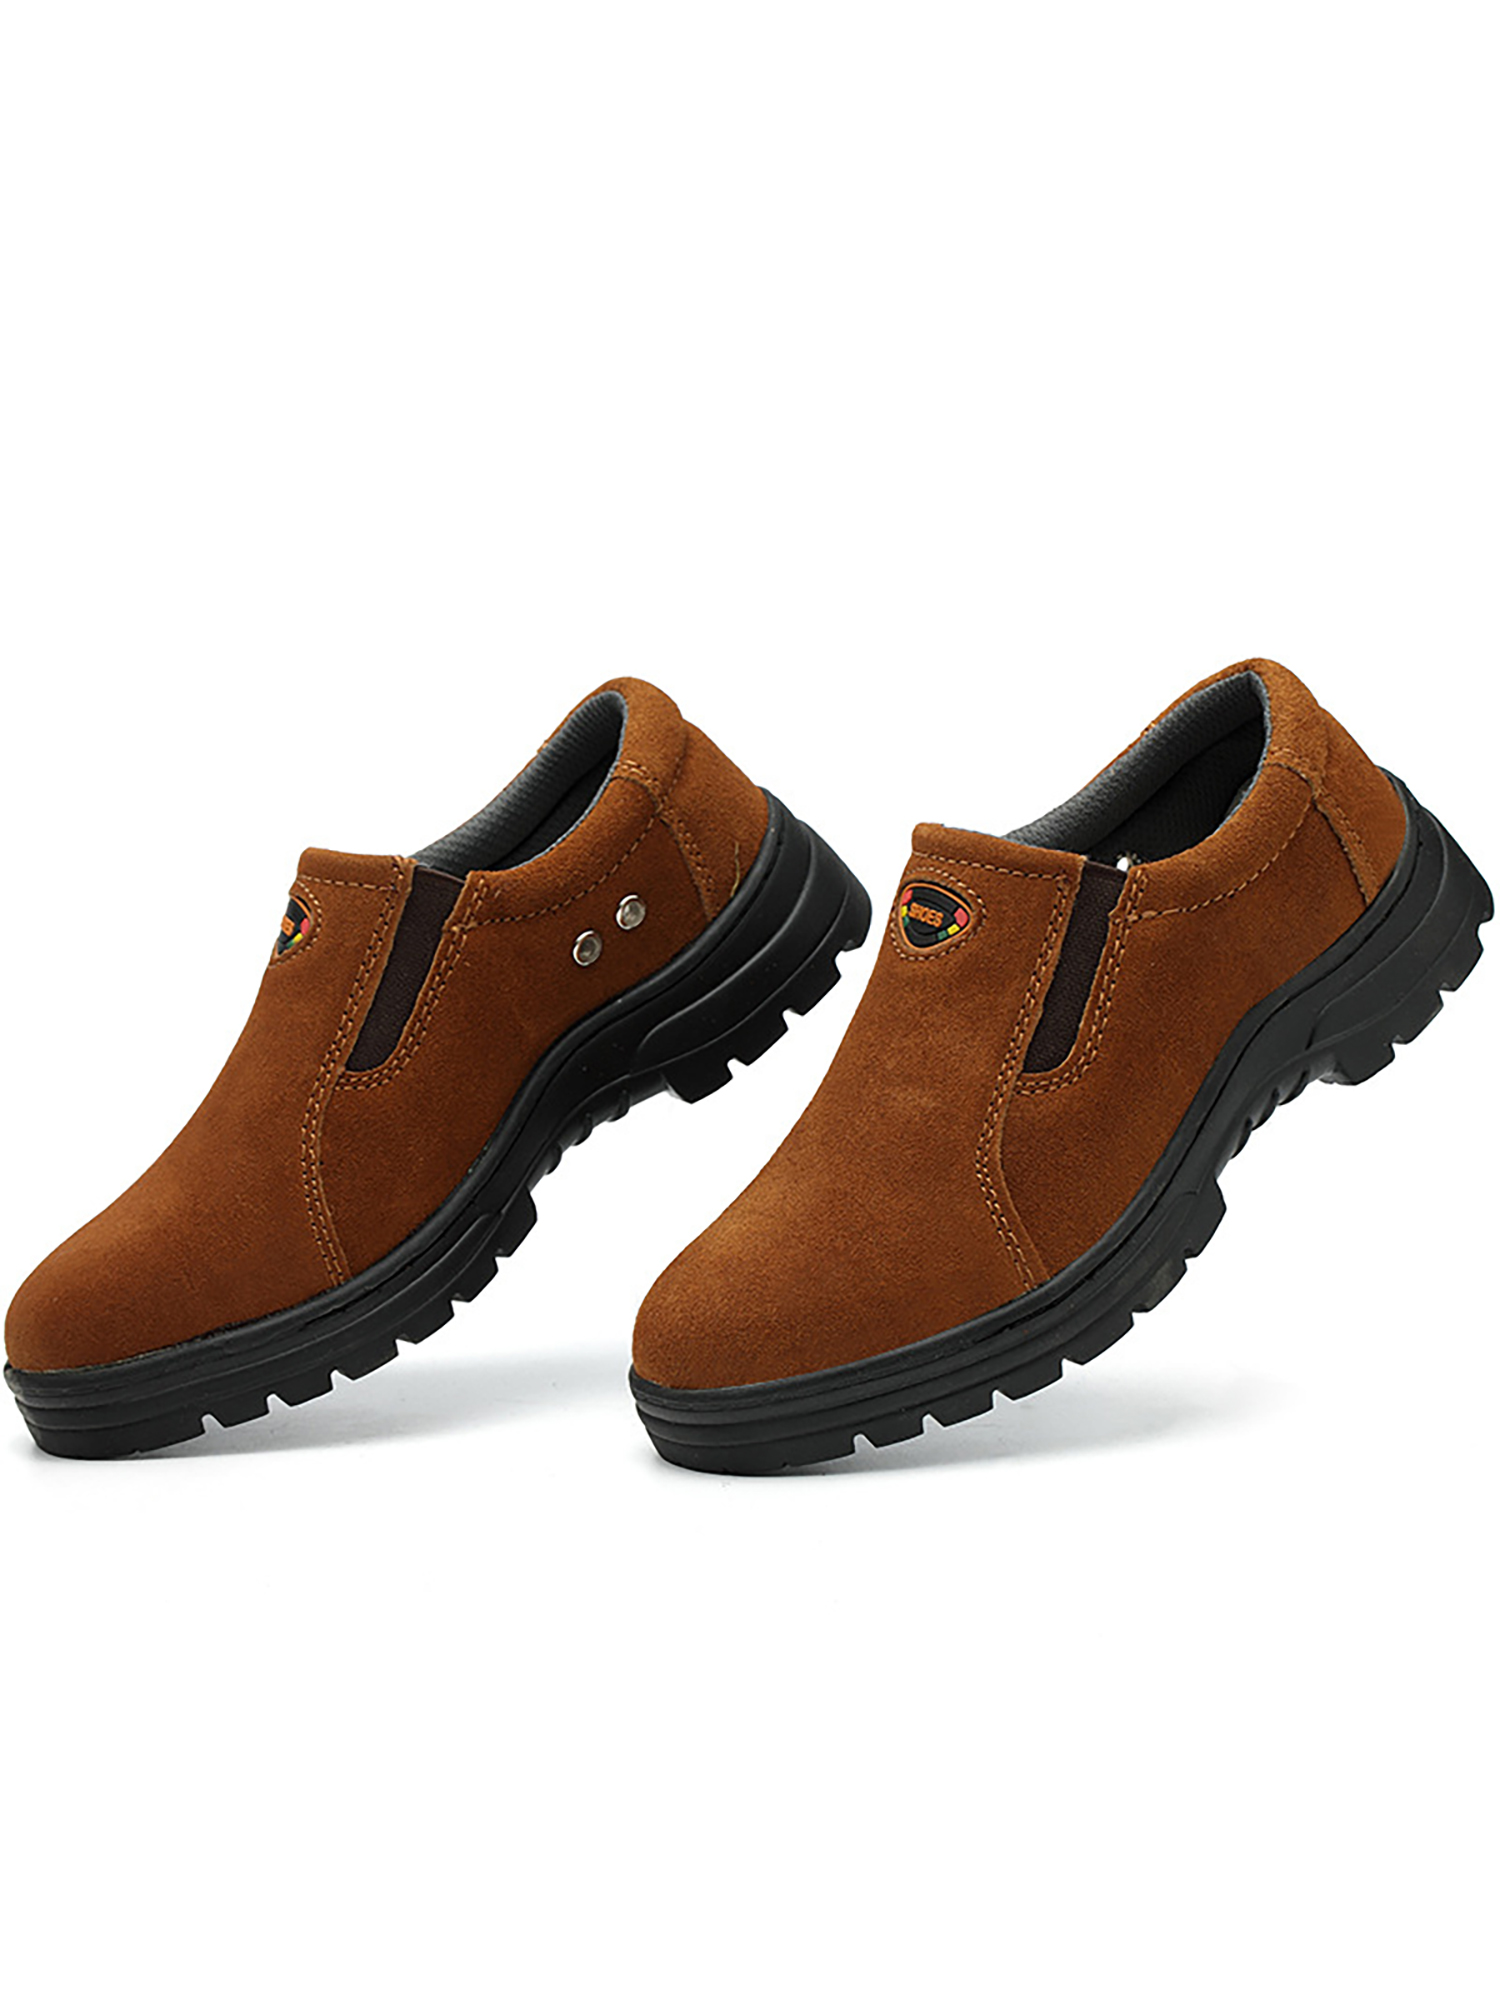 Safety Trainers Mens Womens Steel Toe Cap Work Shoes Hiking Ankle Boots Shoes